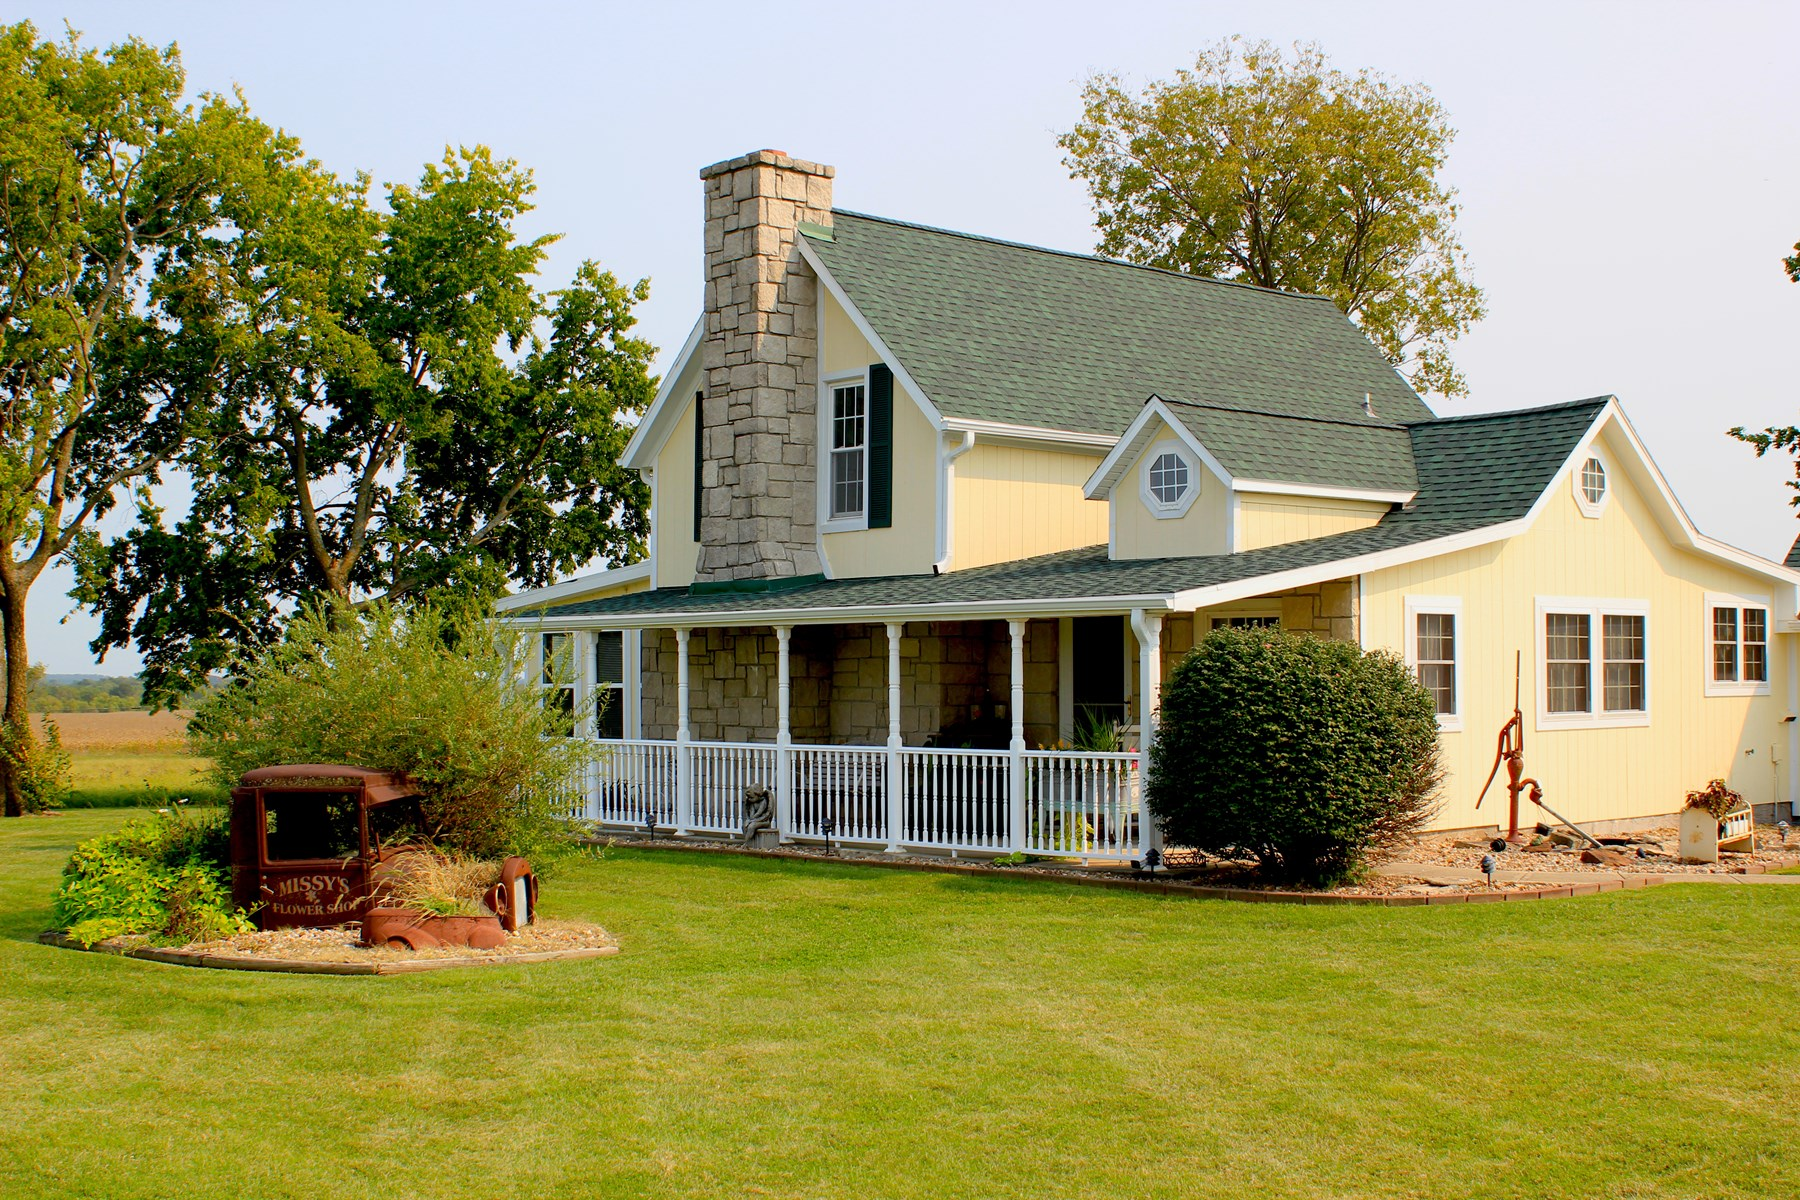 Restored Farmhouse on 16 acres with Outbuildings in Butler